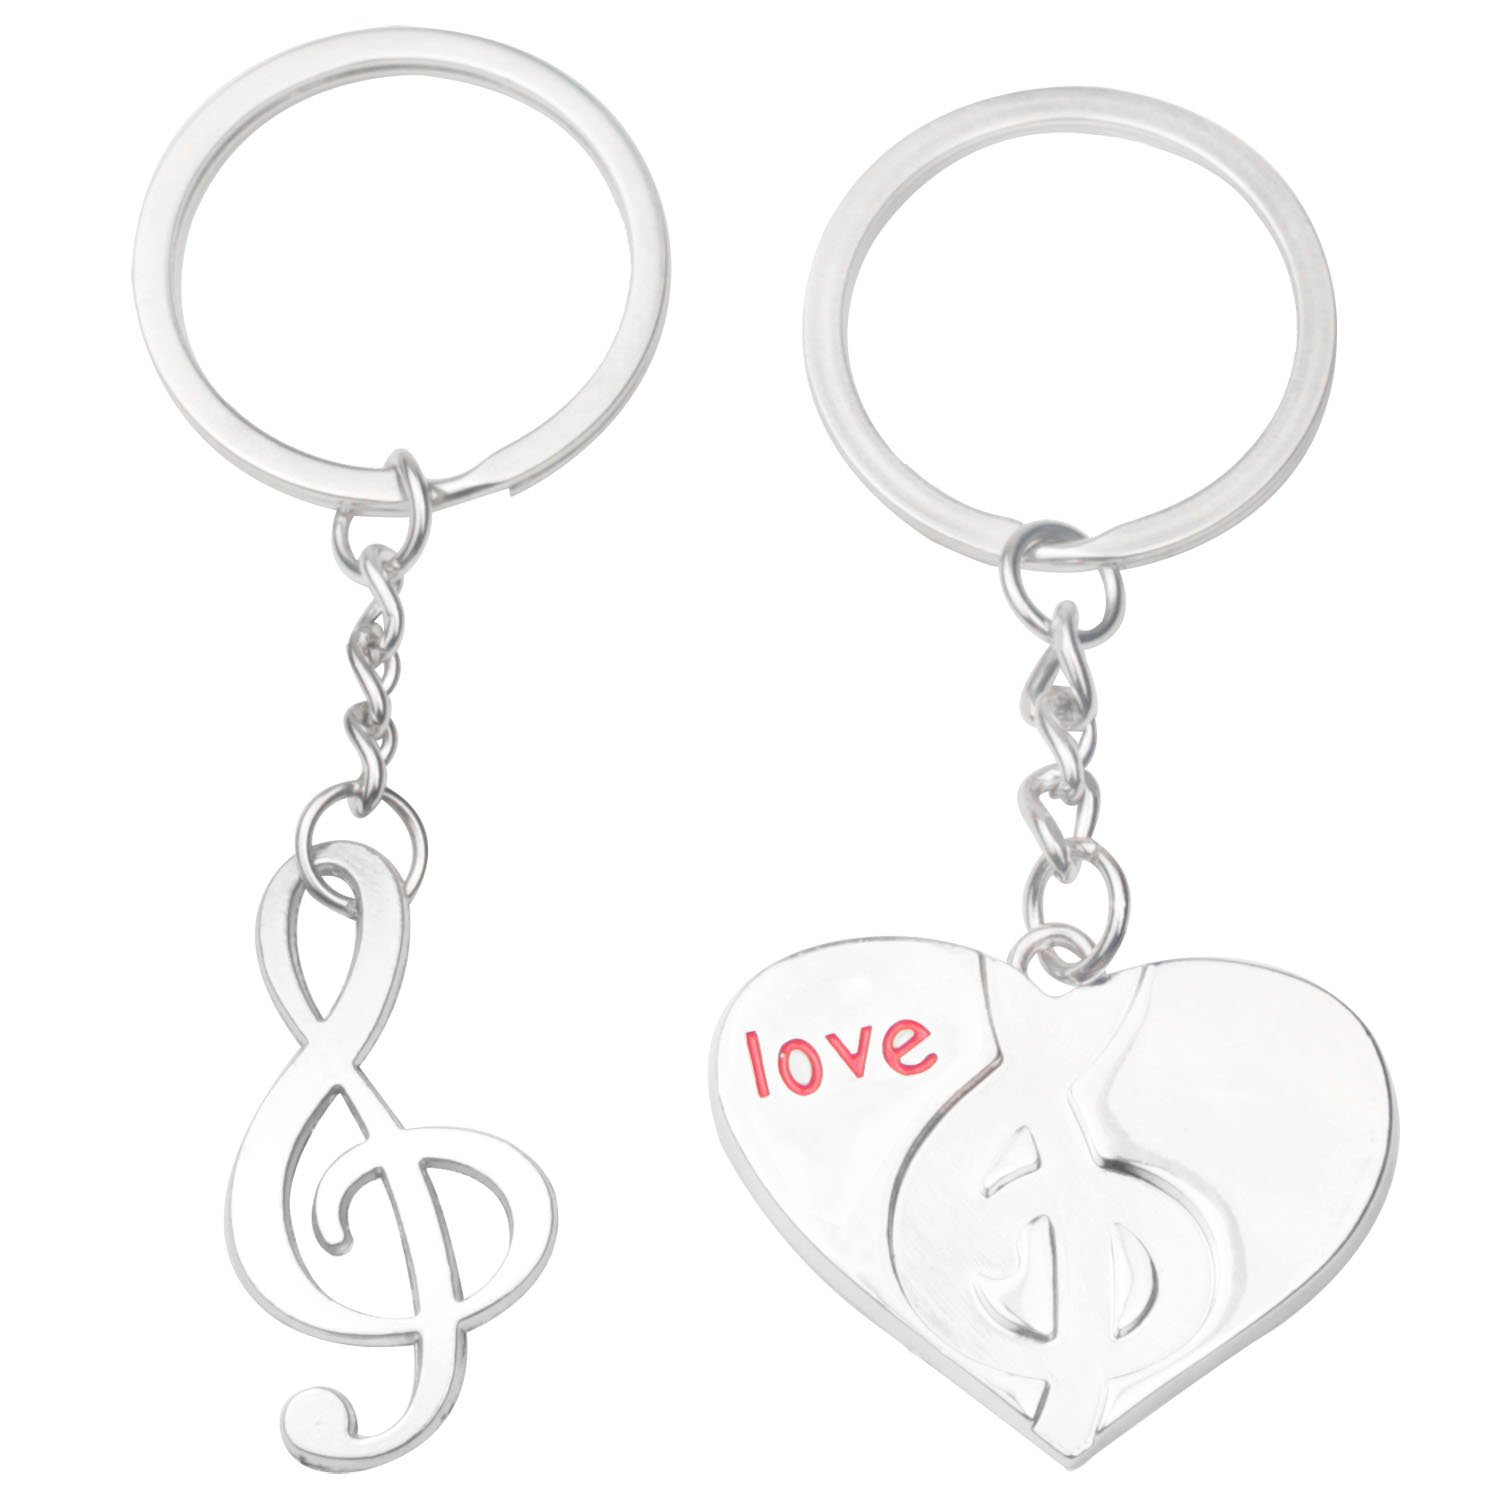 a07a8cef346 Details about Couple Love Heart and Note Shape Keychains Key Ring(Silver,1  Pair) M4B7